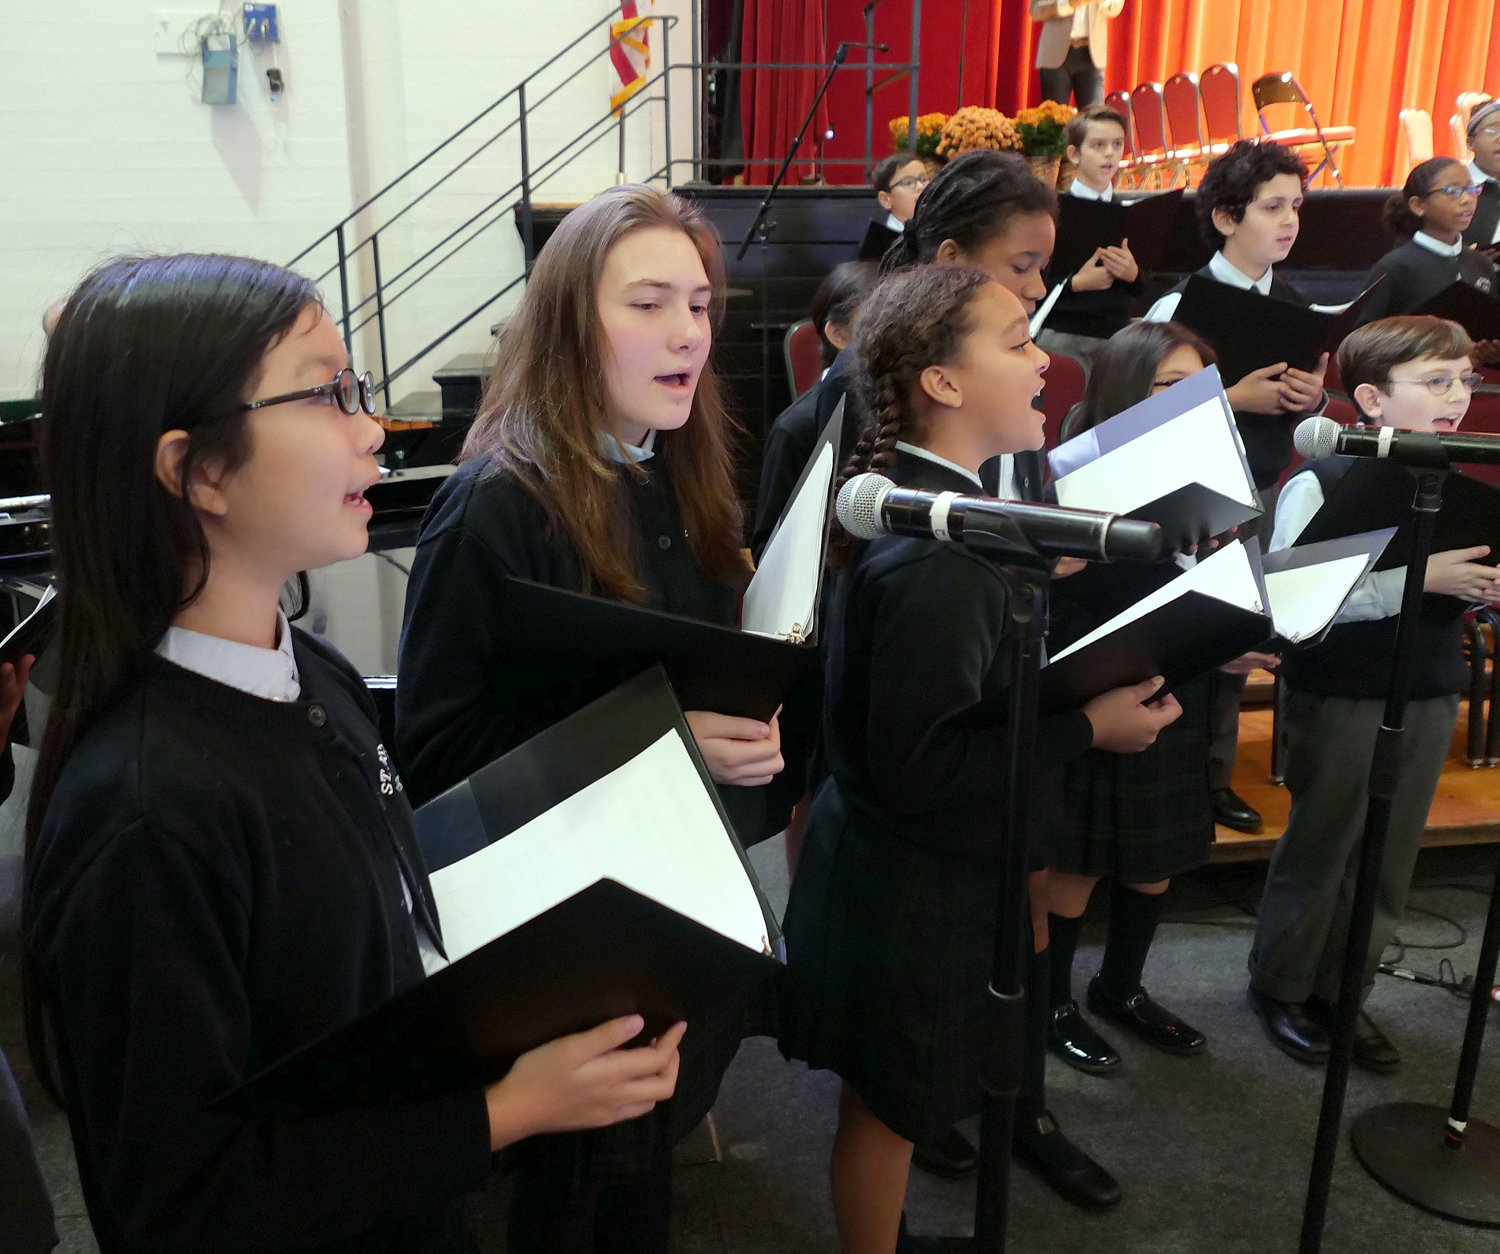 The student choir from St. Joseph's School, Yorkville, sings during the Mass. Bridget Hogan is the choir director.